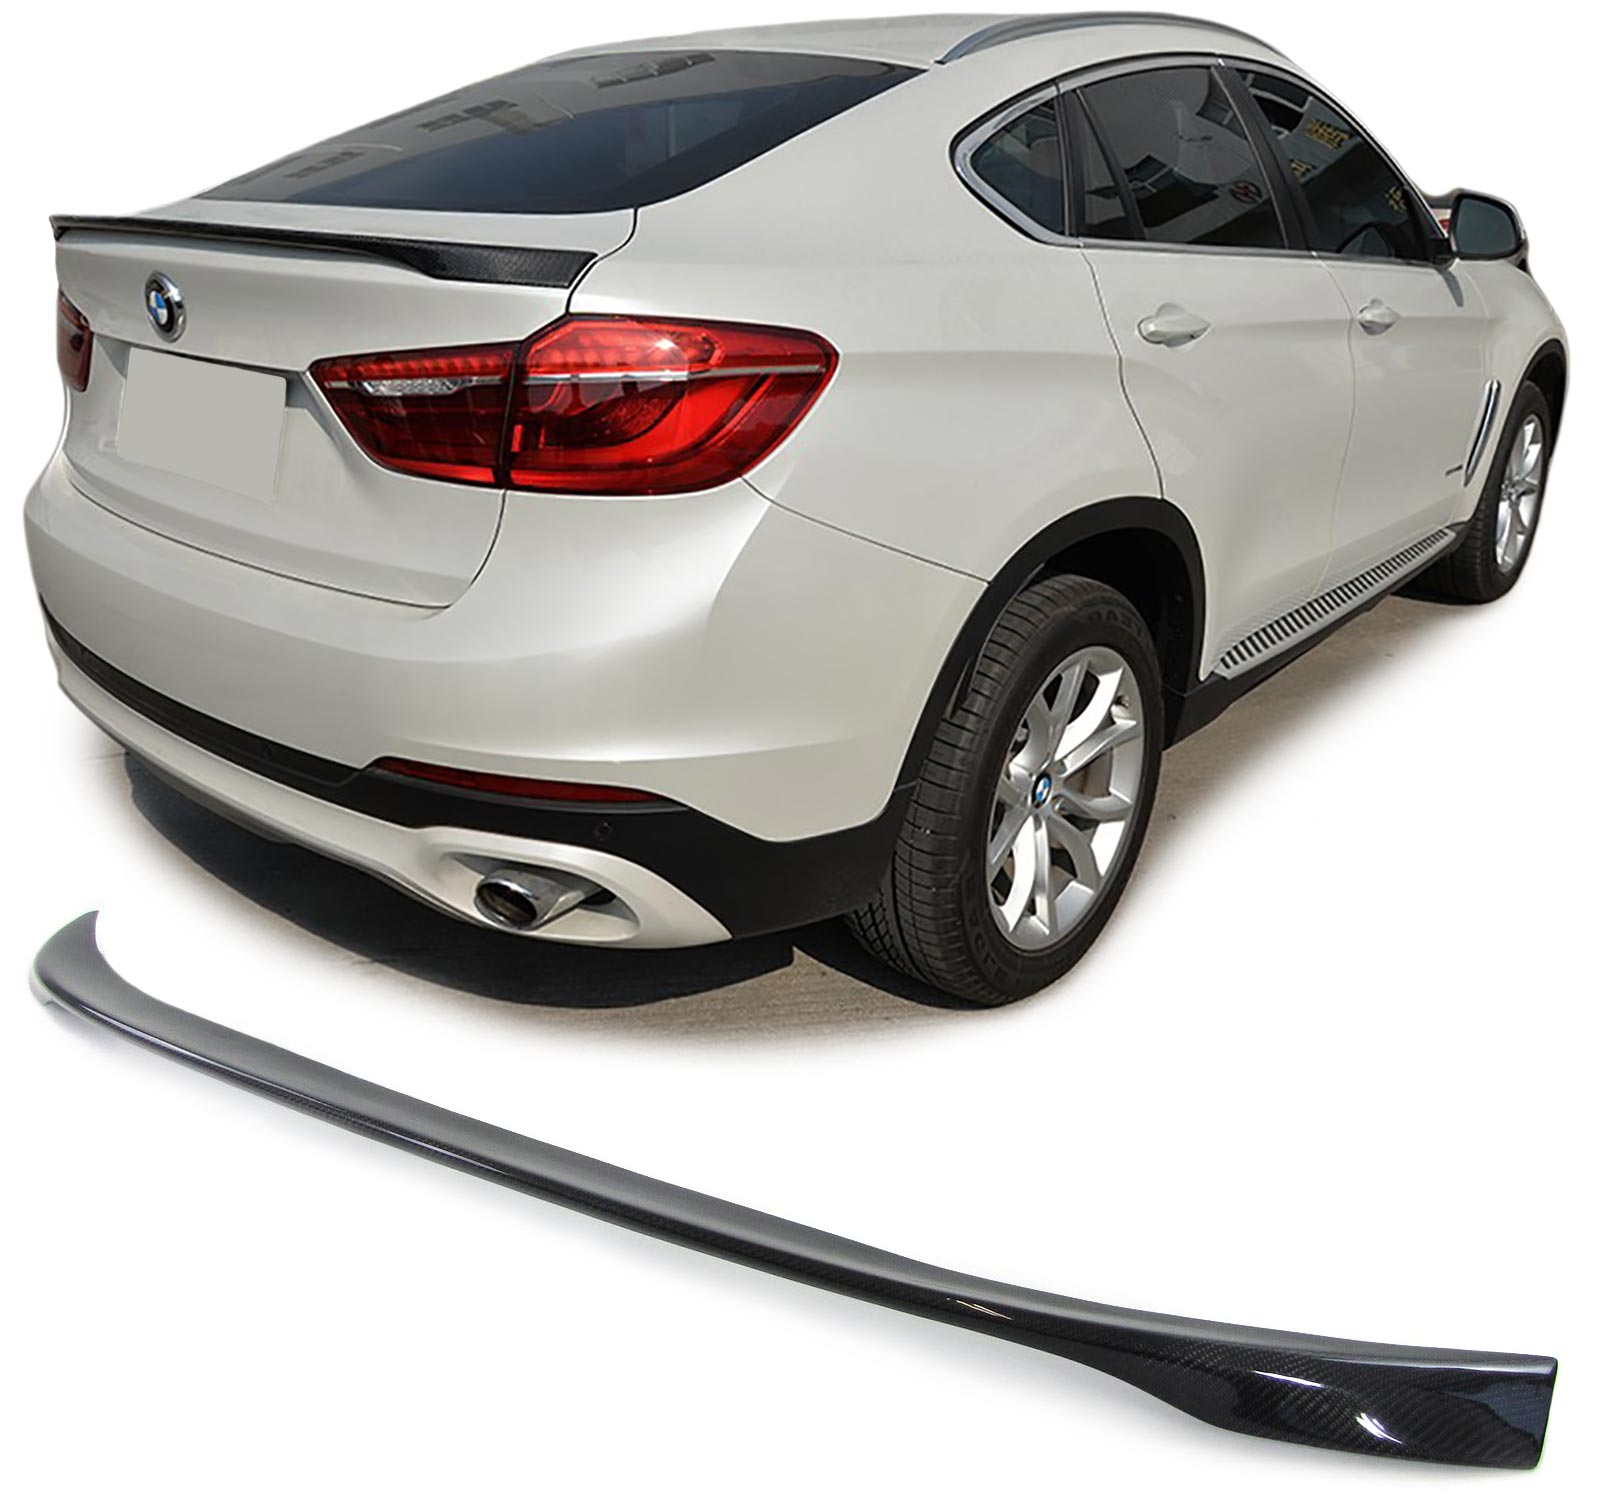 BMW X6 F16 CARBON REAR BOOT TRUNK LIP SPOILER